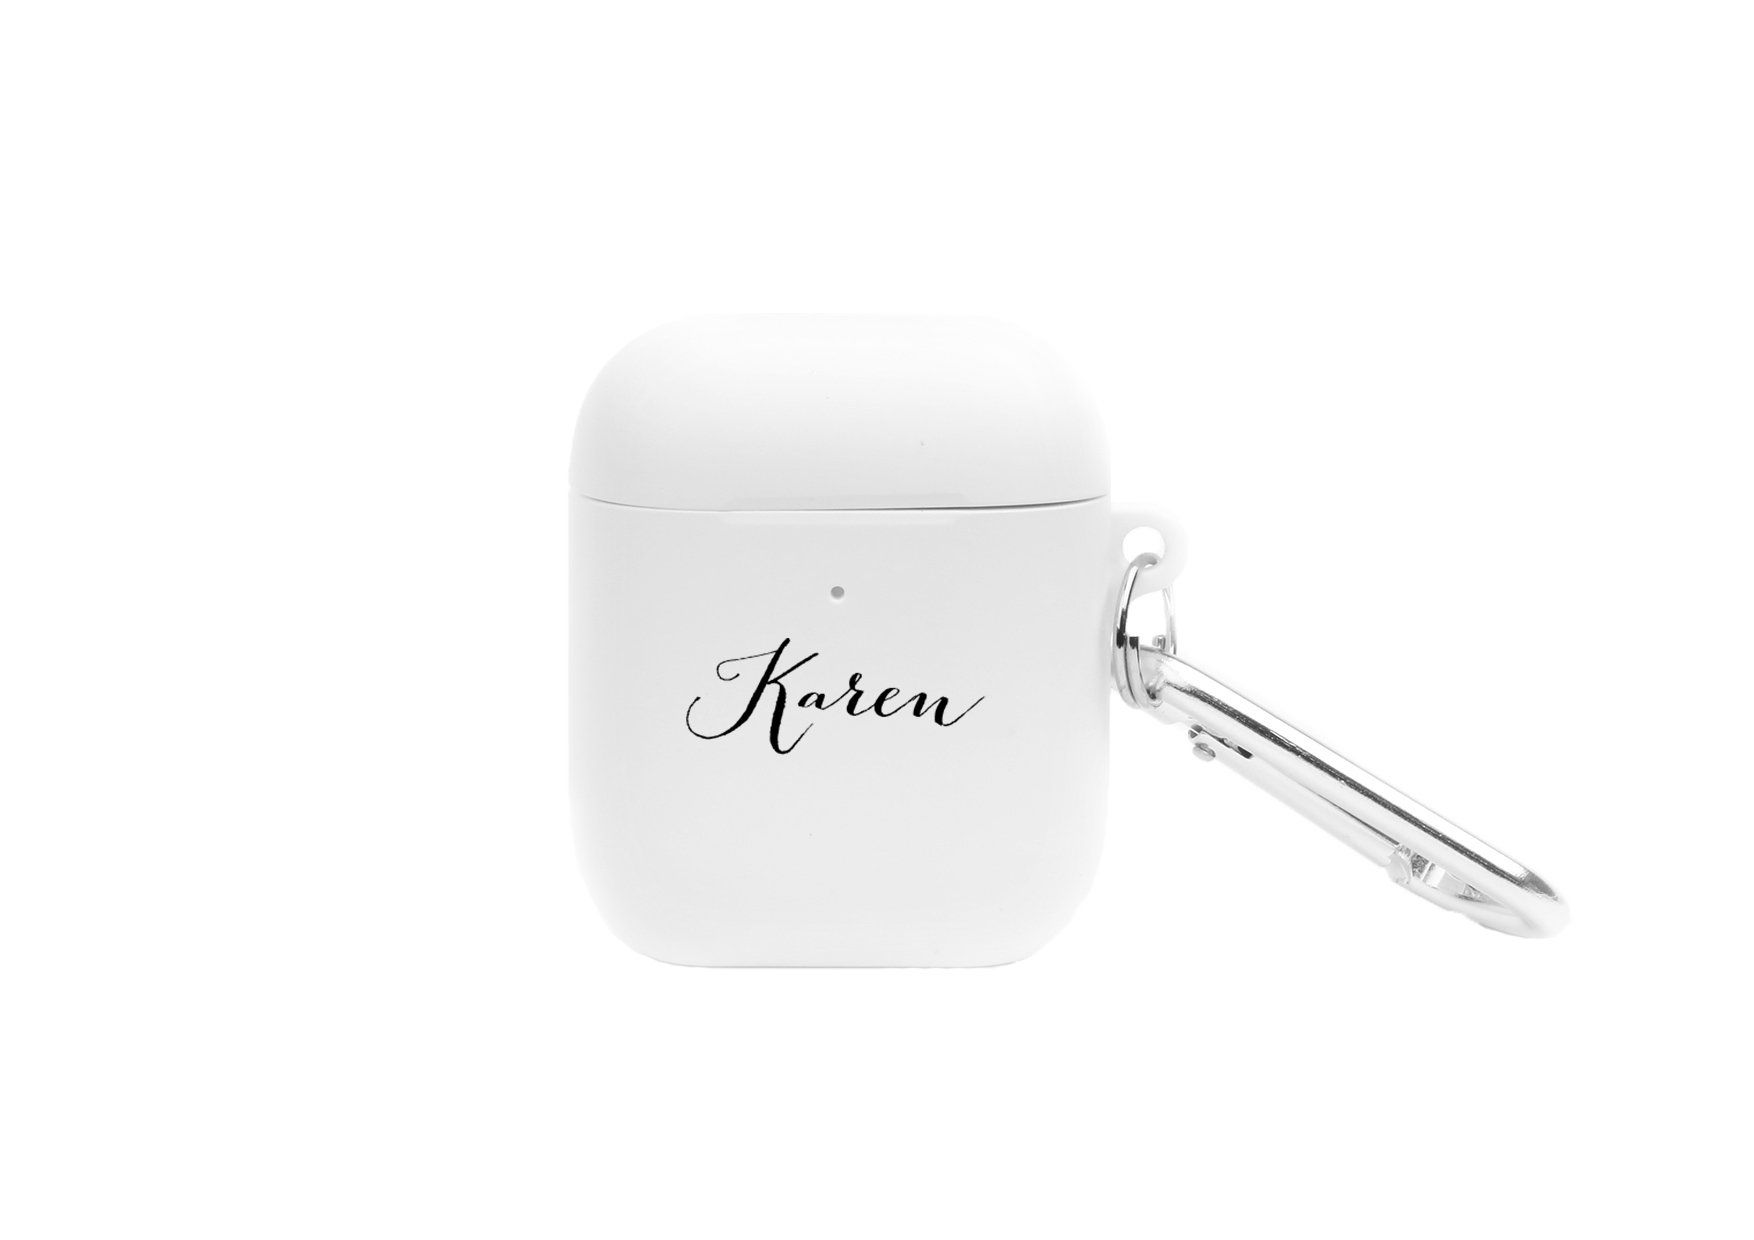 Personalized Airpod Case Custom Name Airpods Case Monogram Etsy In 2021 Airpod Case Apple Watch Bands Case